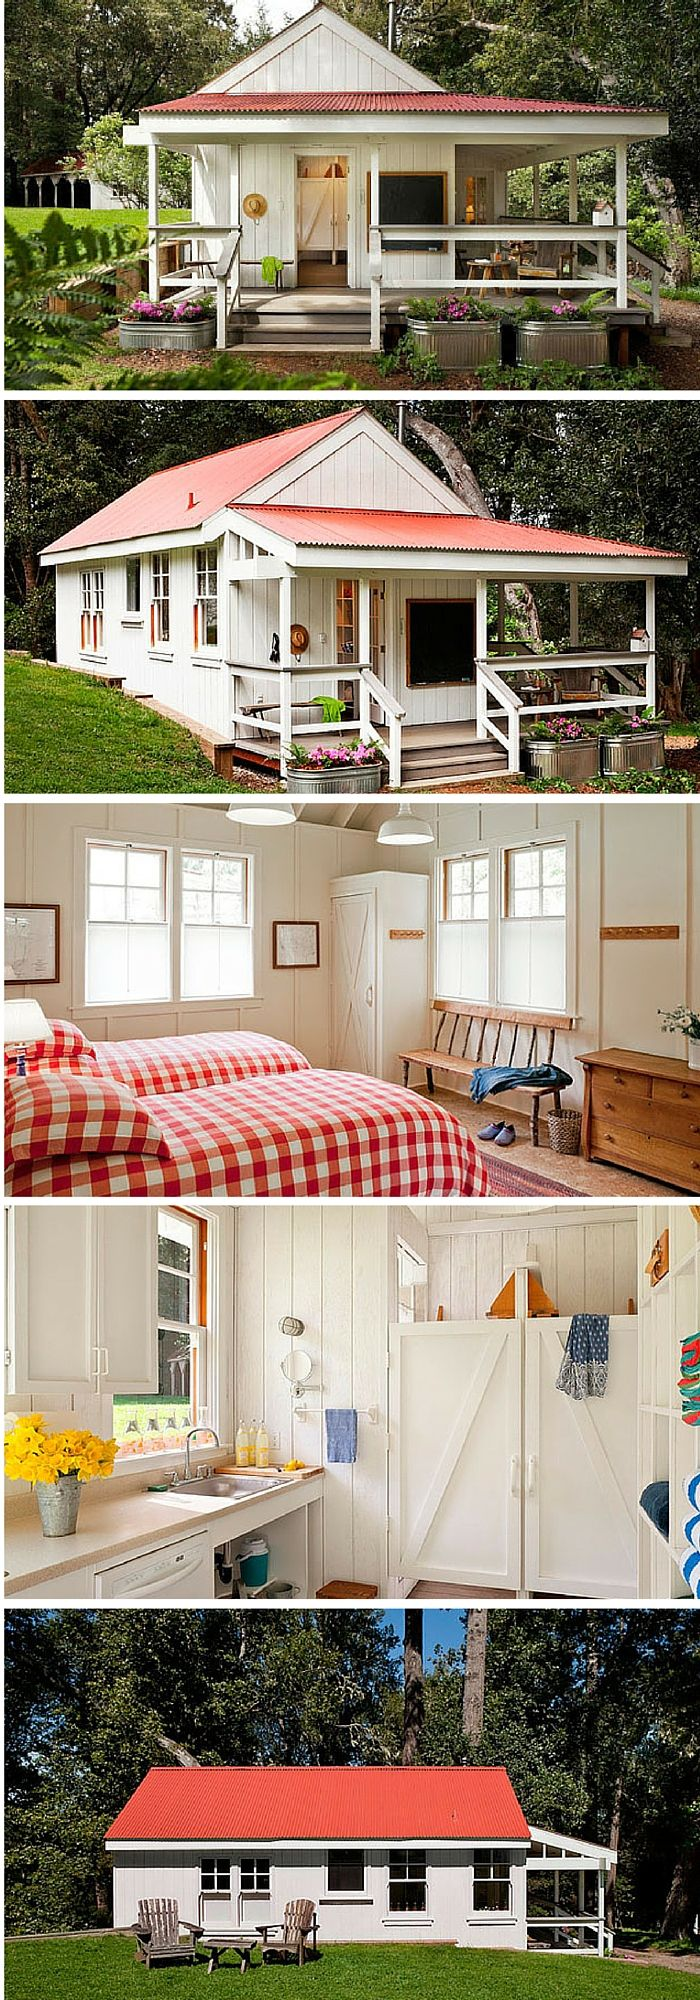 A stunning 260 square foot home located on the Pt Reyes